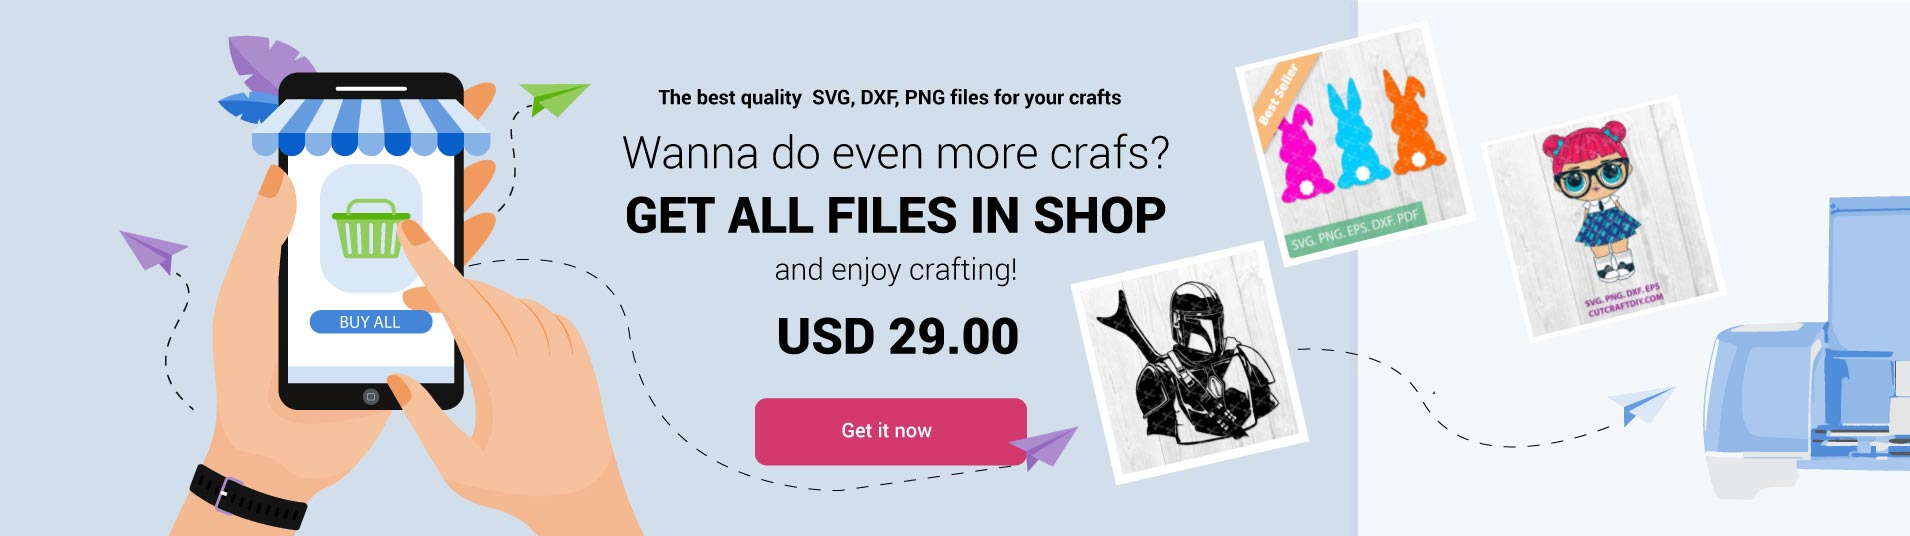 Get All cutting files in the shop SVG DX PNG Cut files